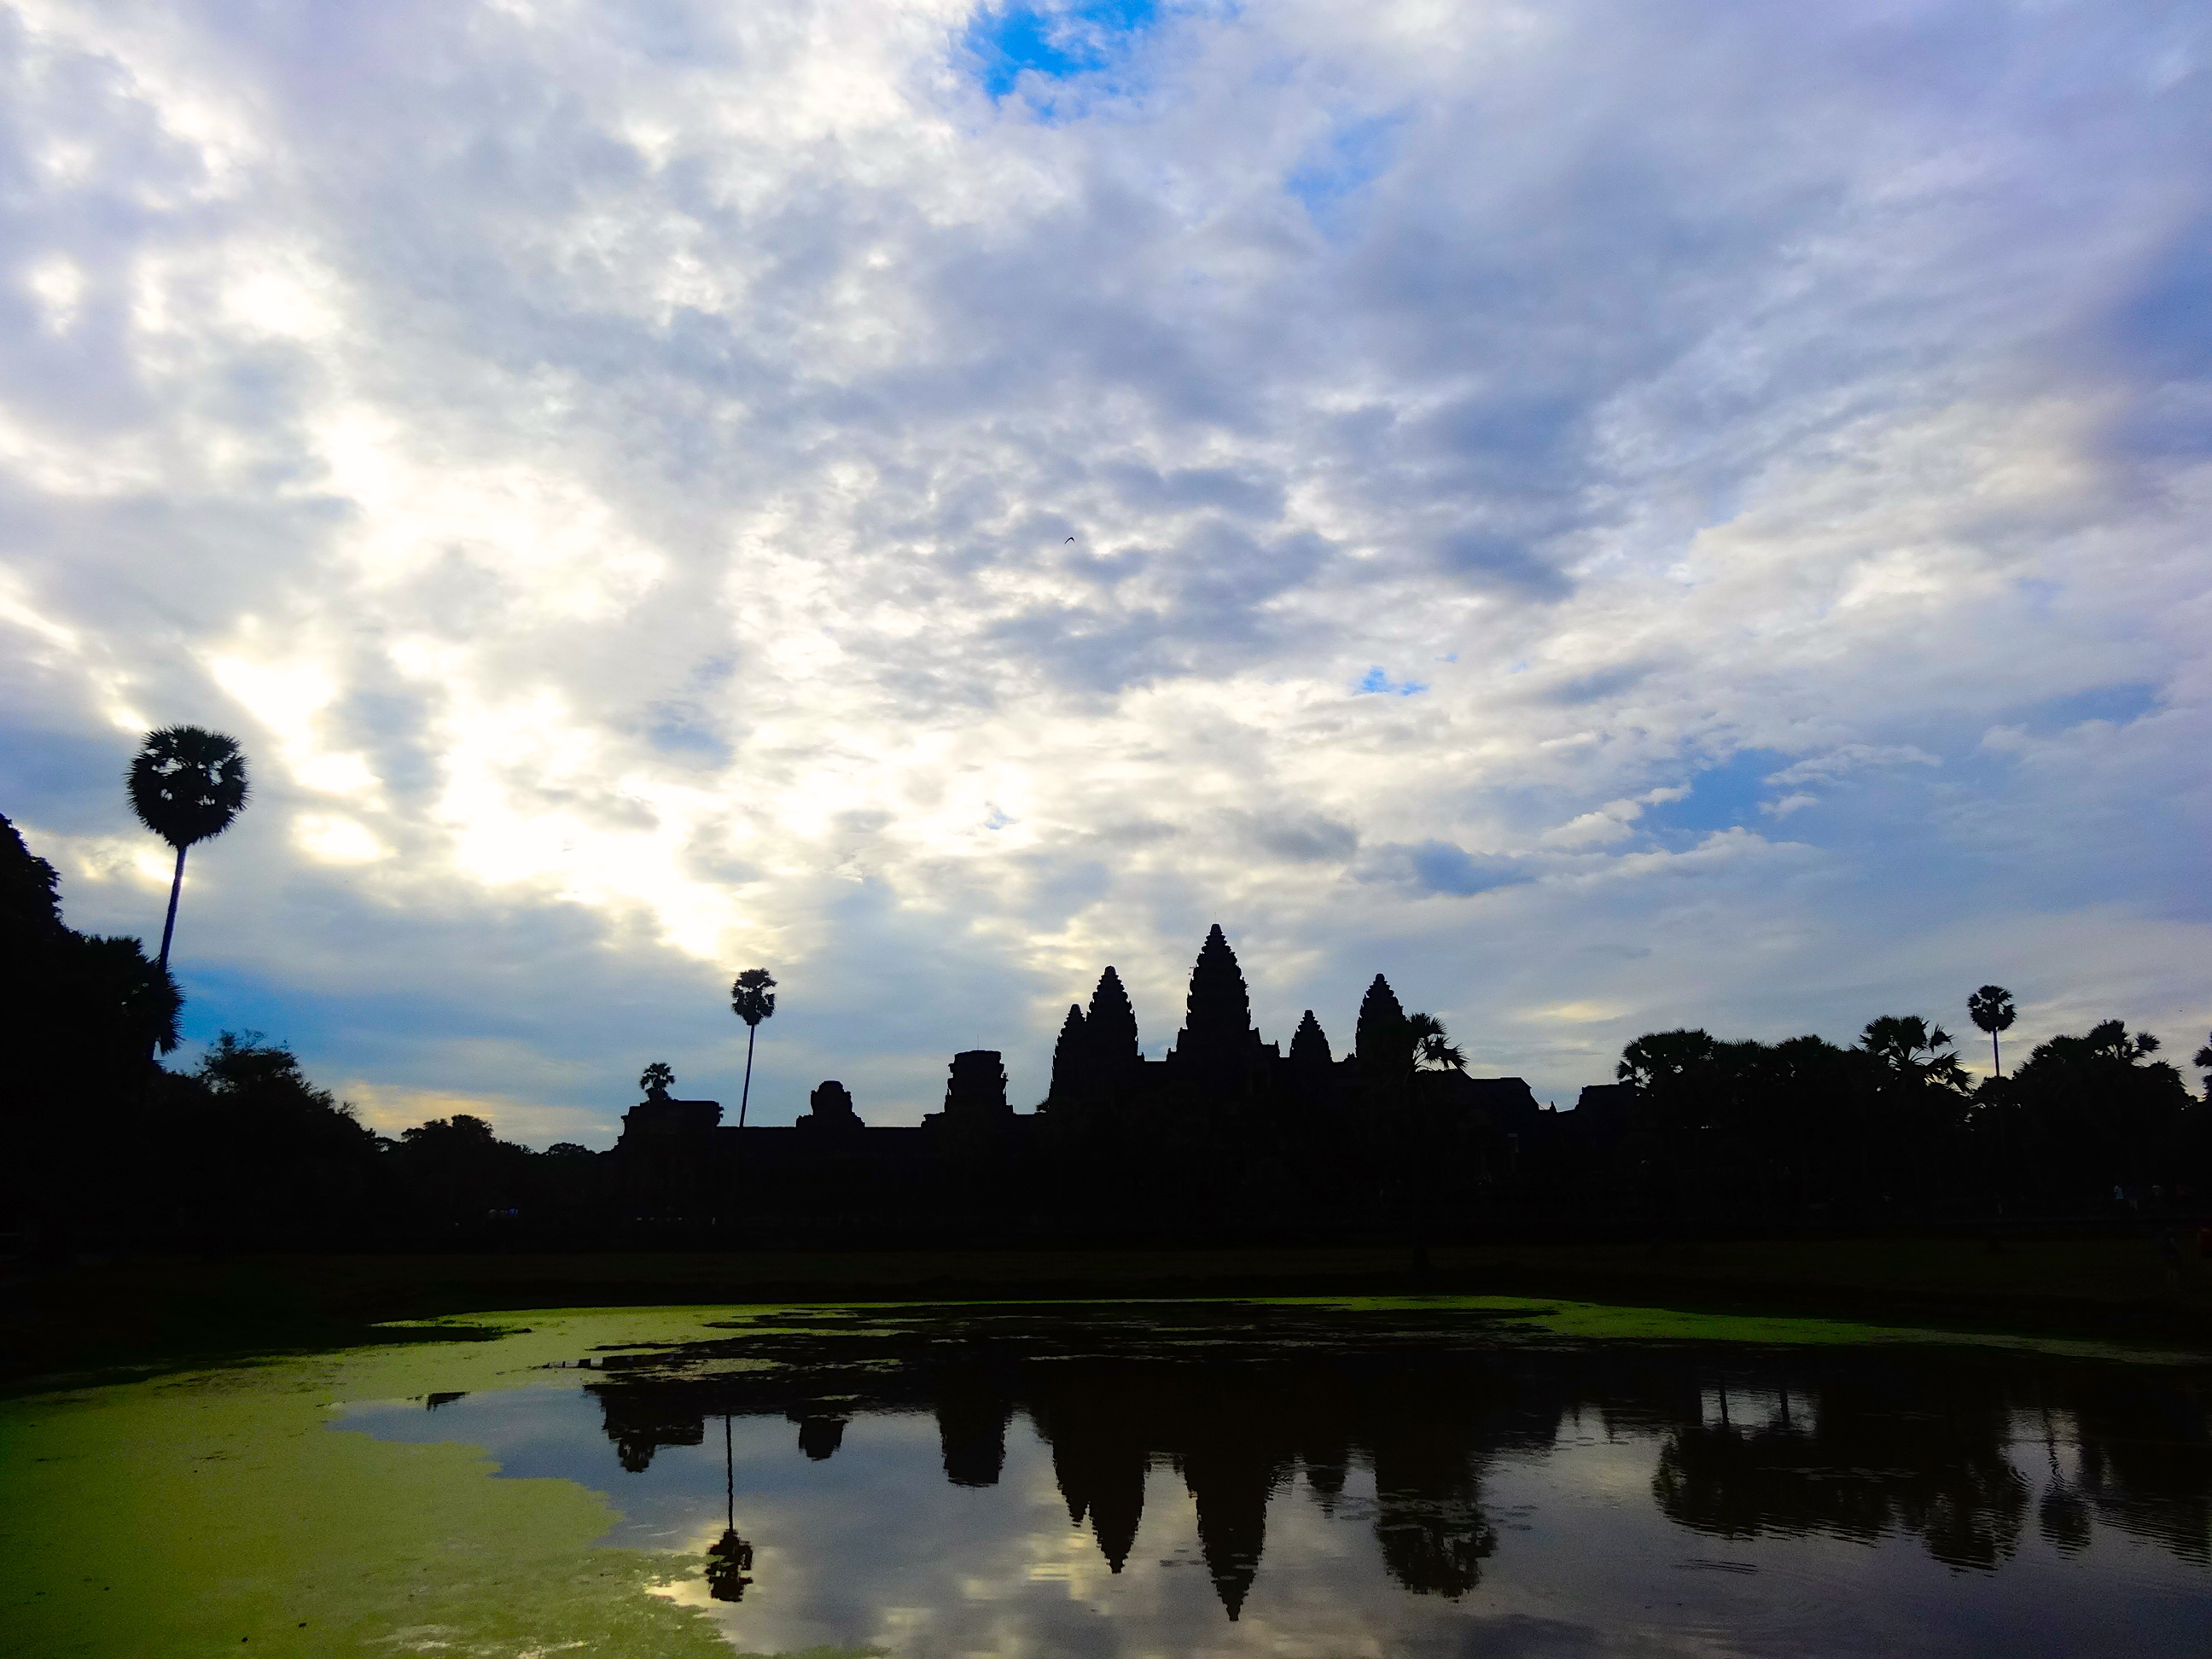 Fav place in the world: Angkor